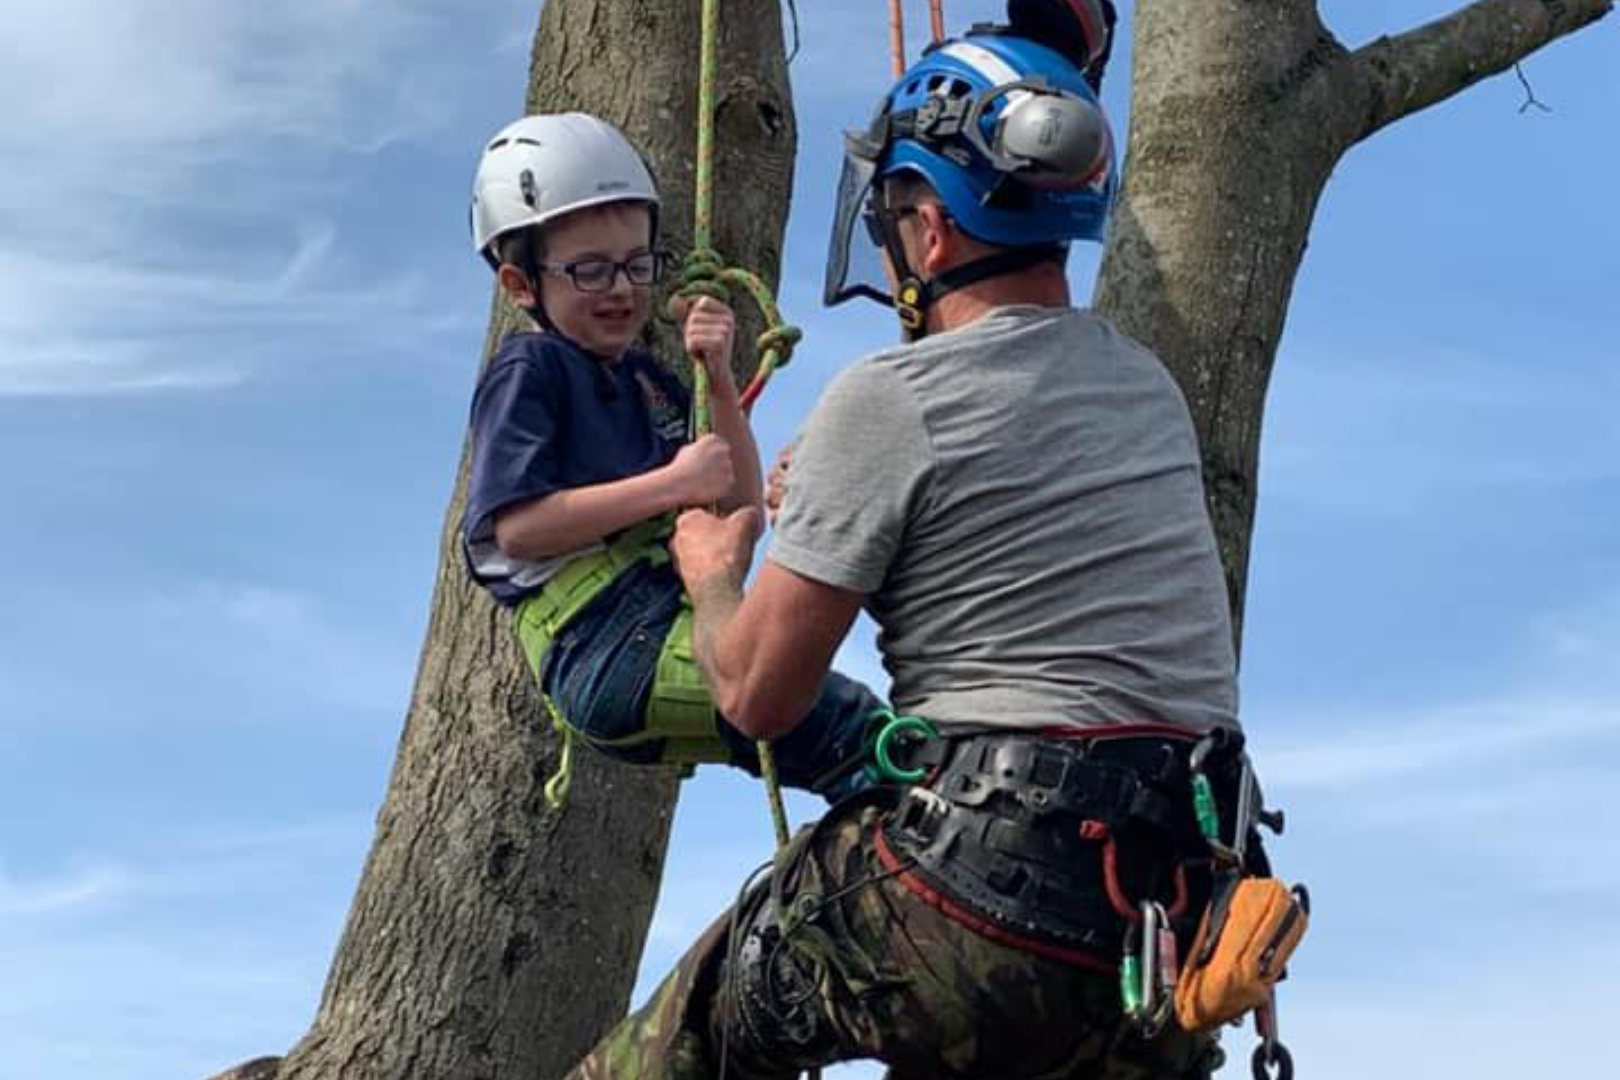 The #SafeclimbStyle Arborist Harness Competition